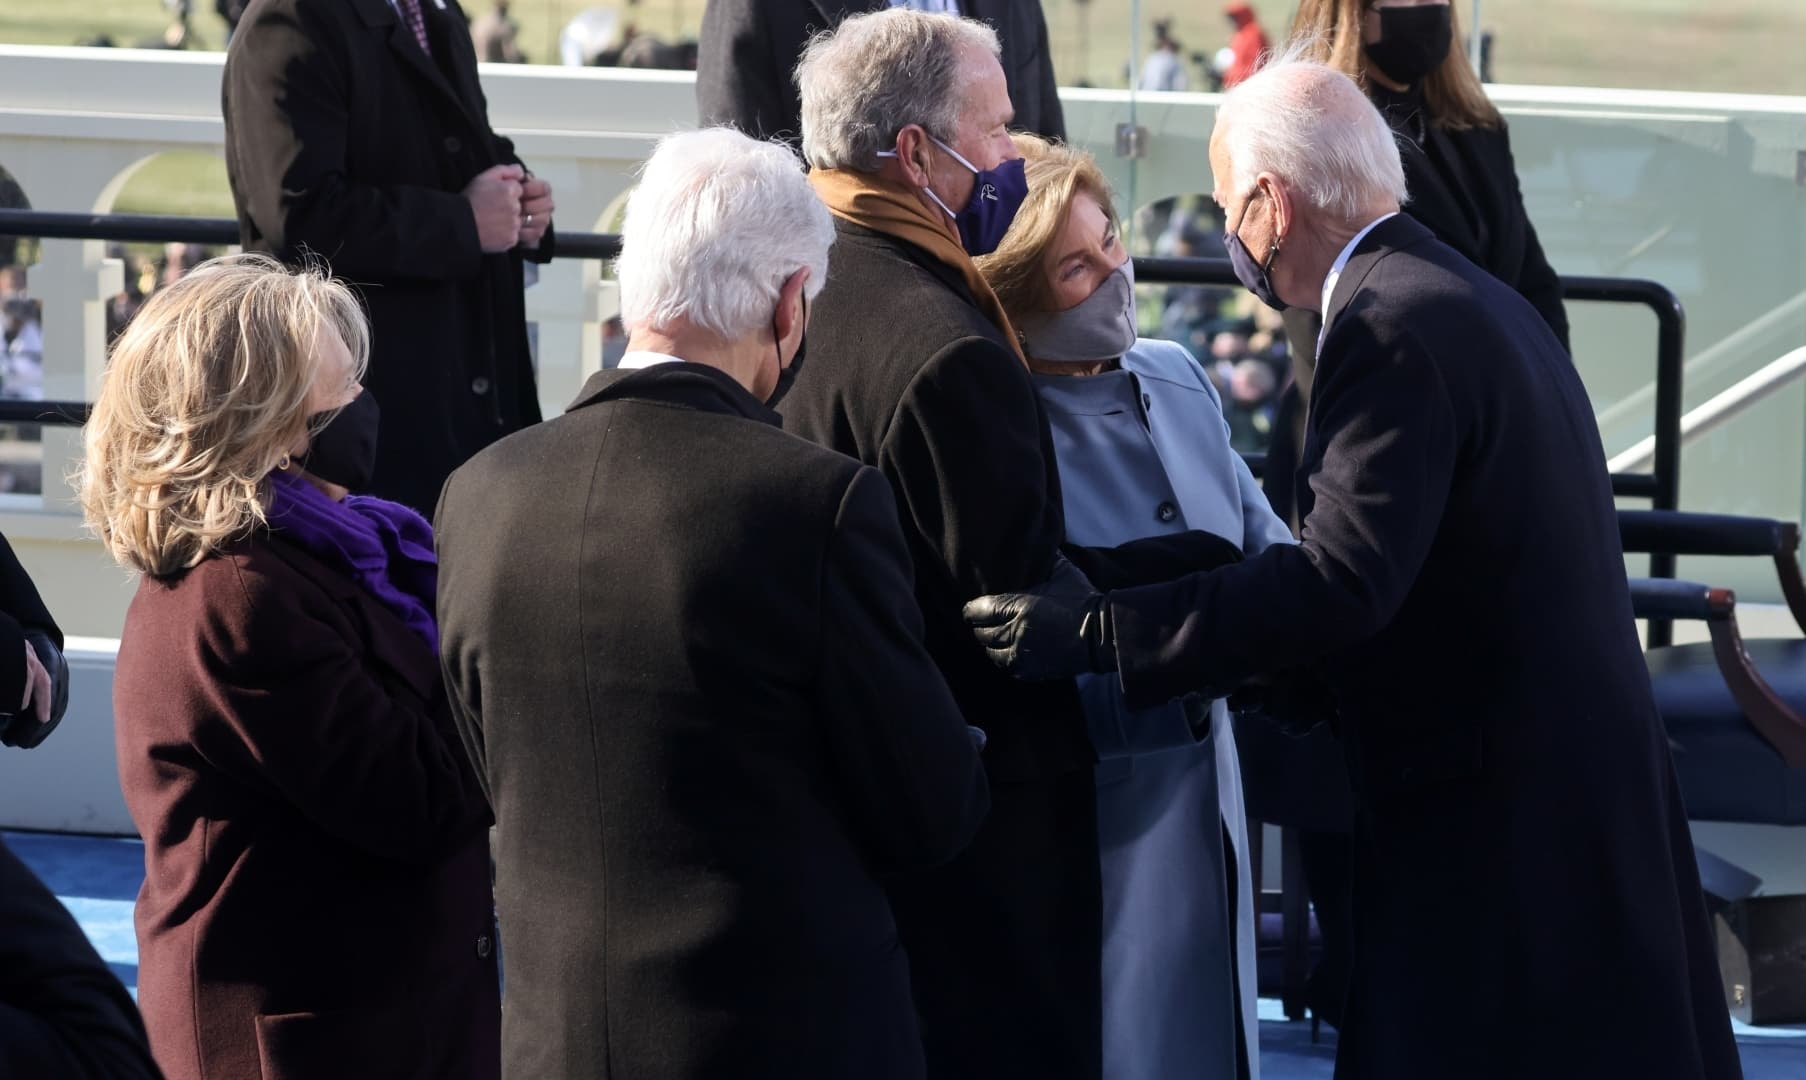 US President Joe Biden greets former US president George W. Bush and his wife Laura Bush, and former president Bill Clinton and his wife Hillary Clinton at his inauguration at the US Capitol in Washington. — Reuters